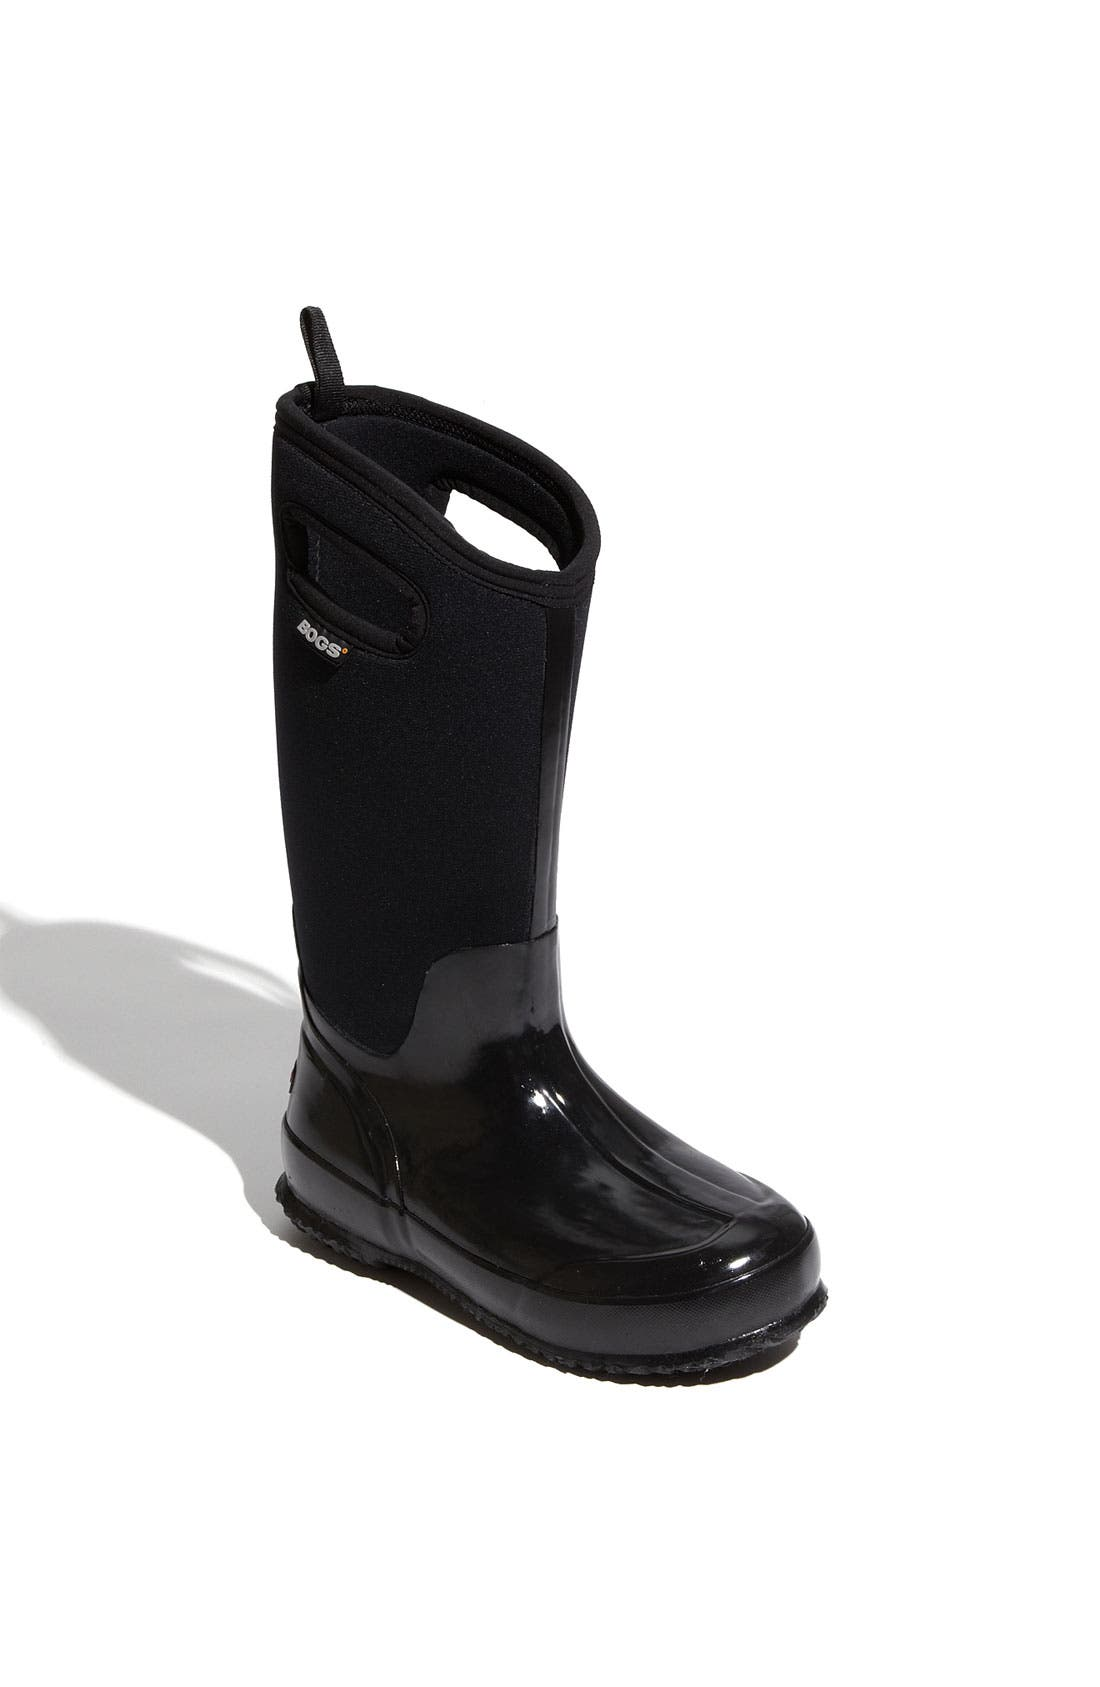 Alternate Image 1 Selected - Bogs 'Classic' Tall Rain Boot (Women)